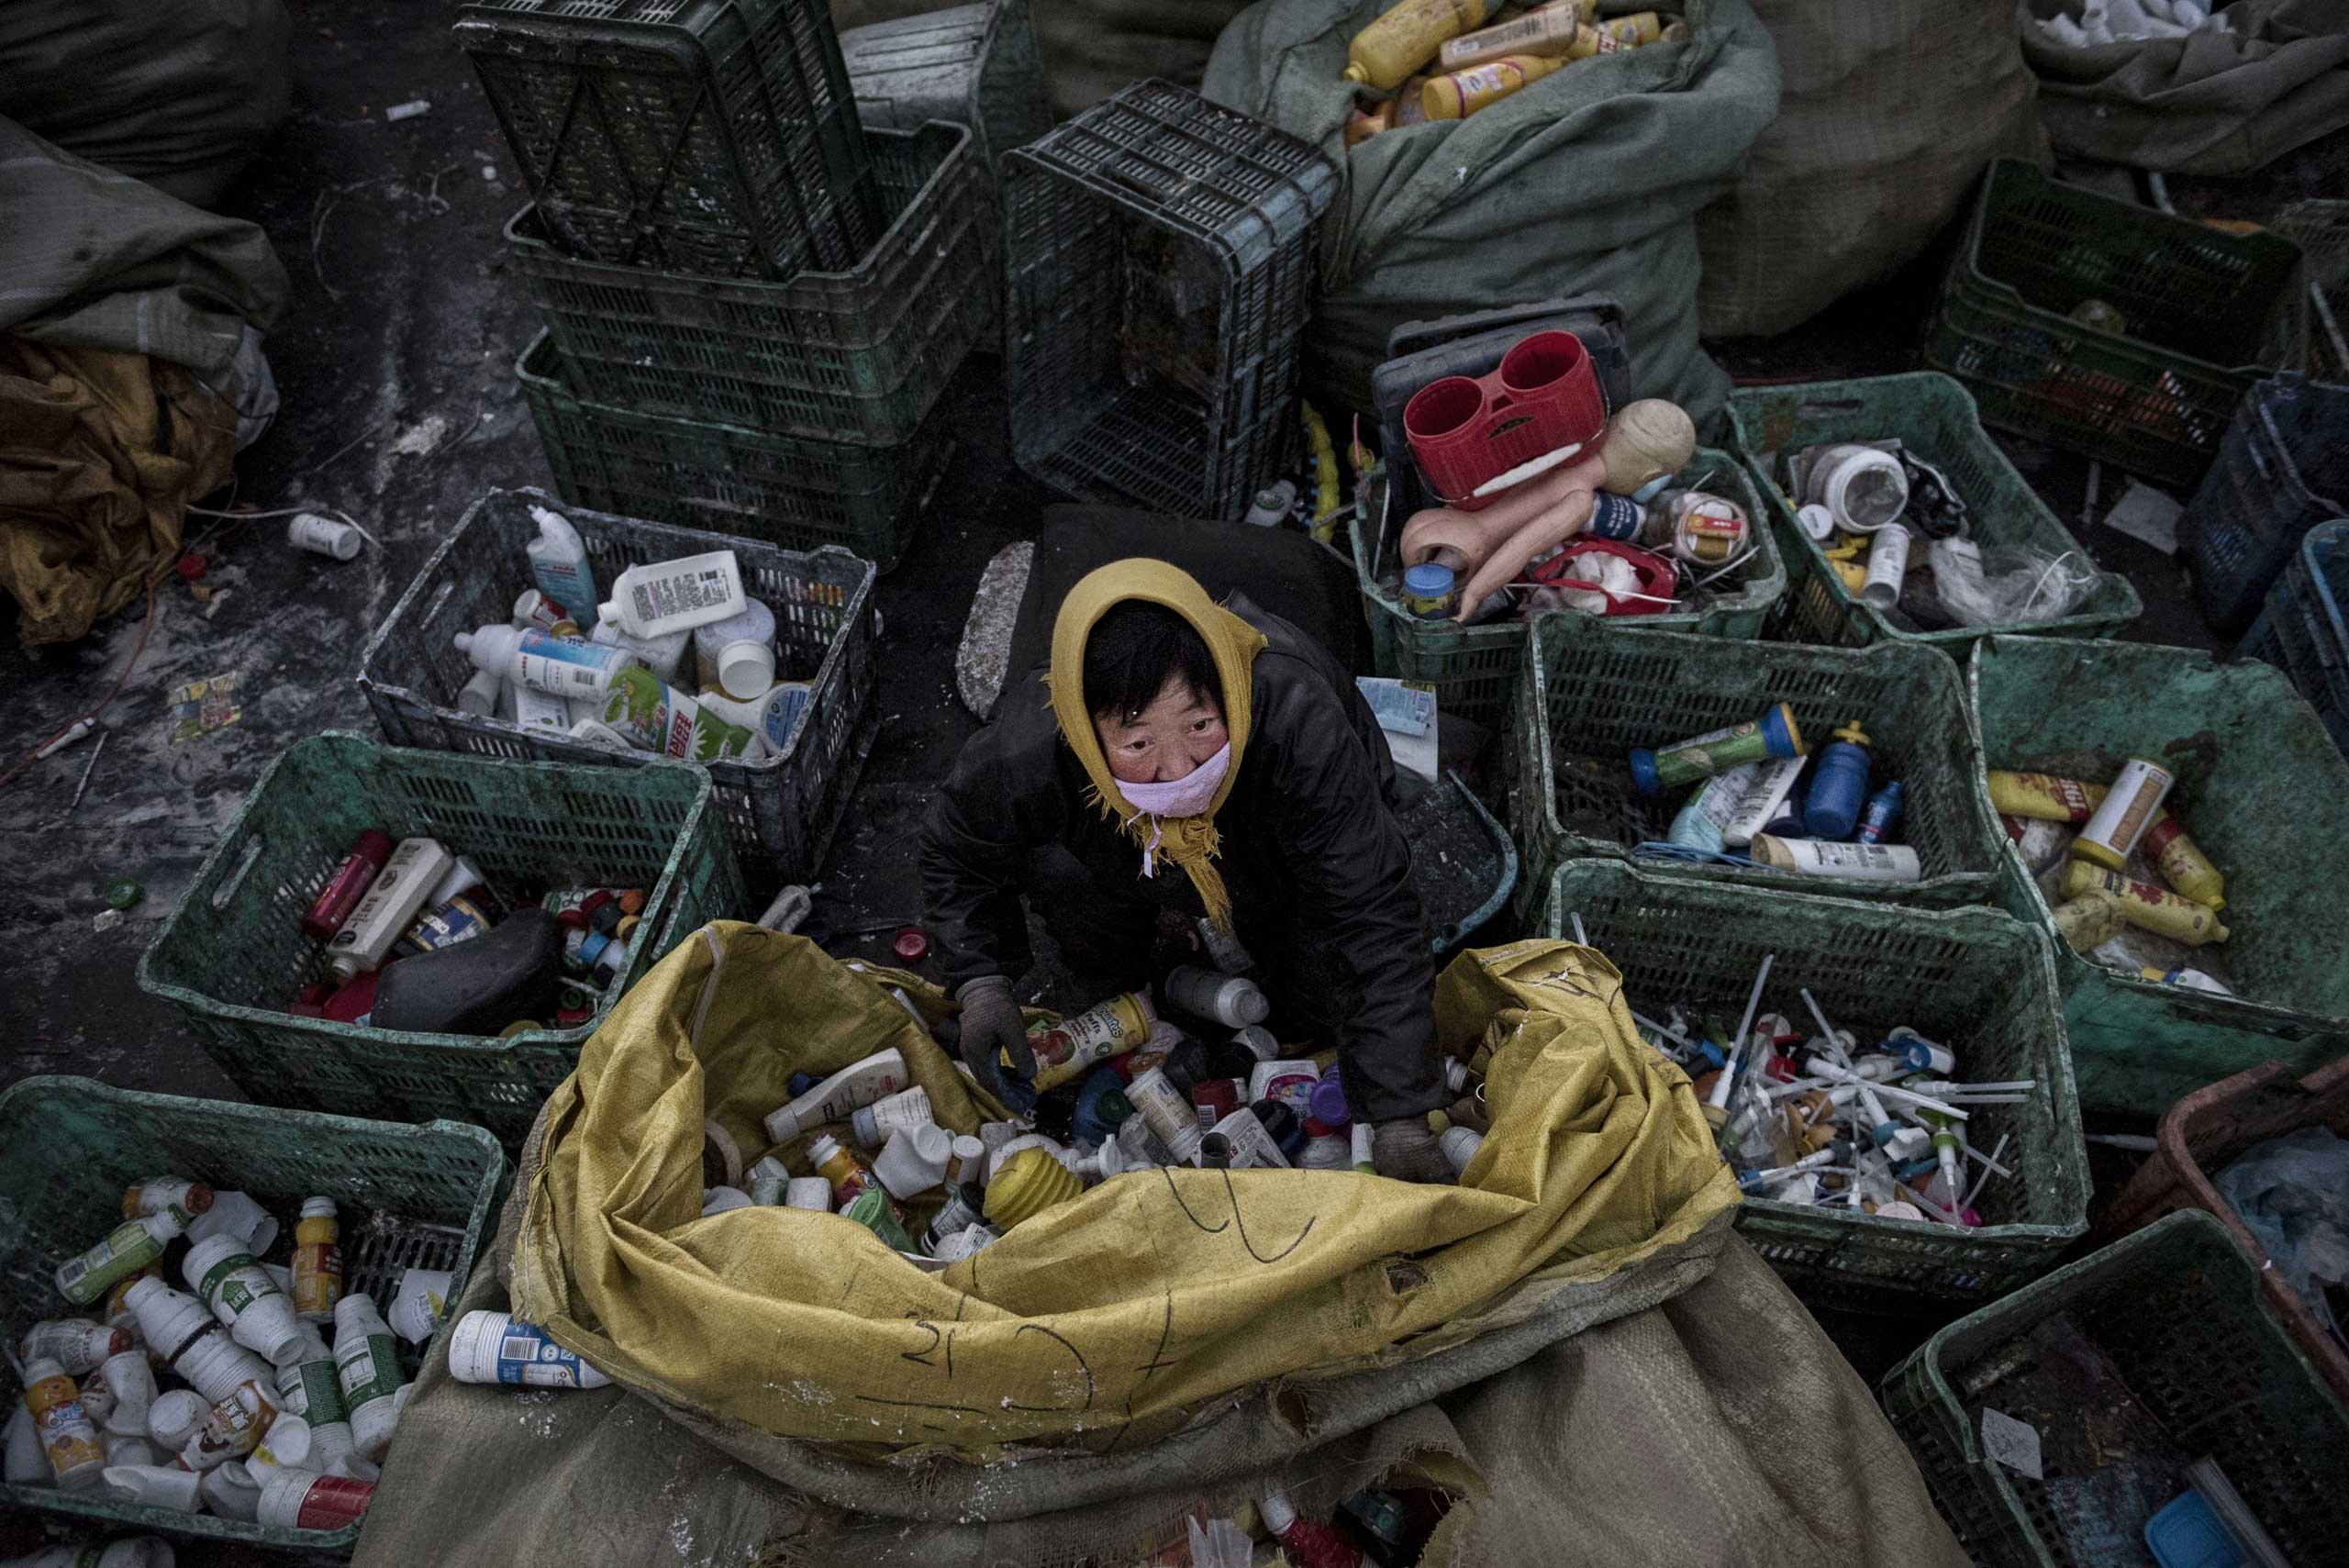 A laborer sorts plastic before being recycled in the Dong Xiao Kou village on Dec. 15, 2014 in Beijing.